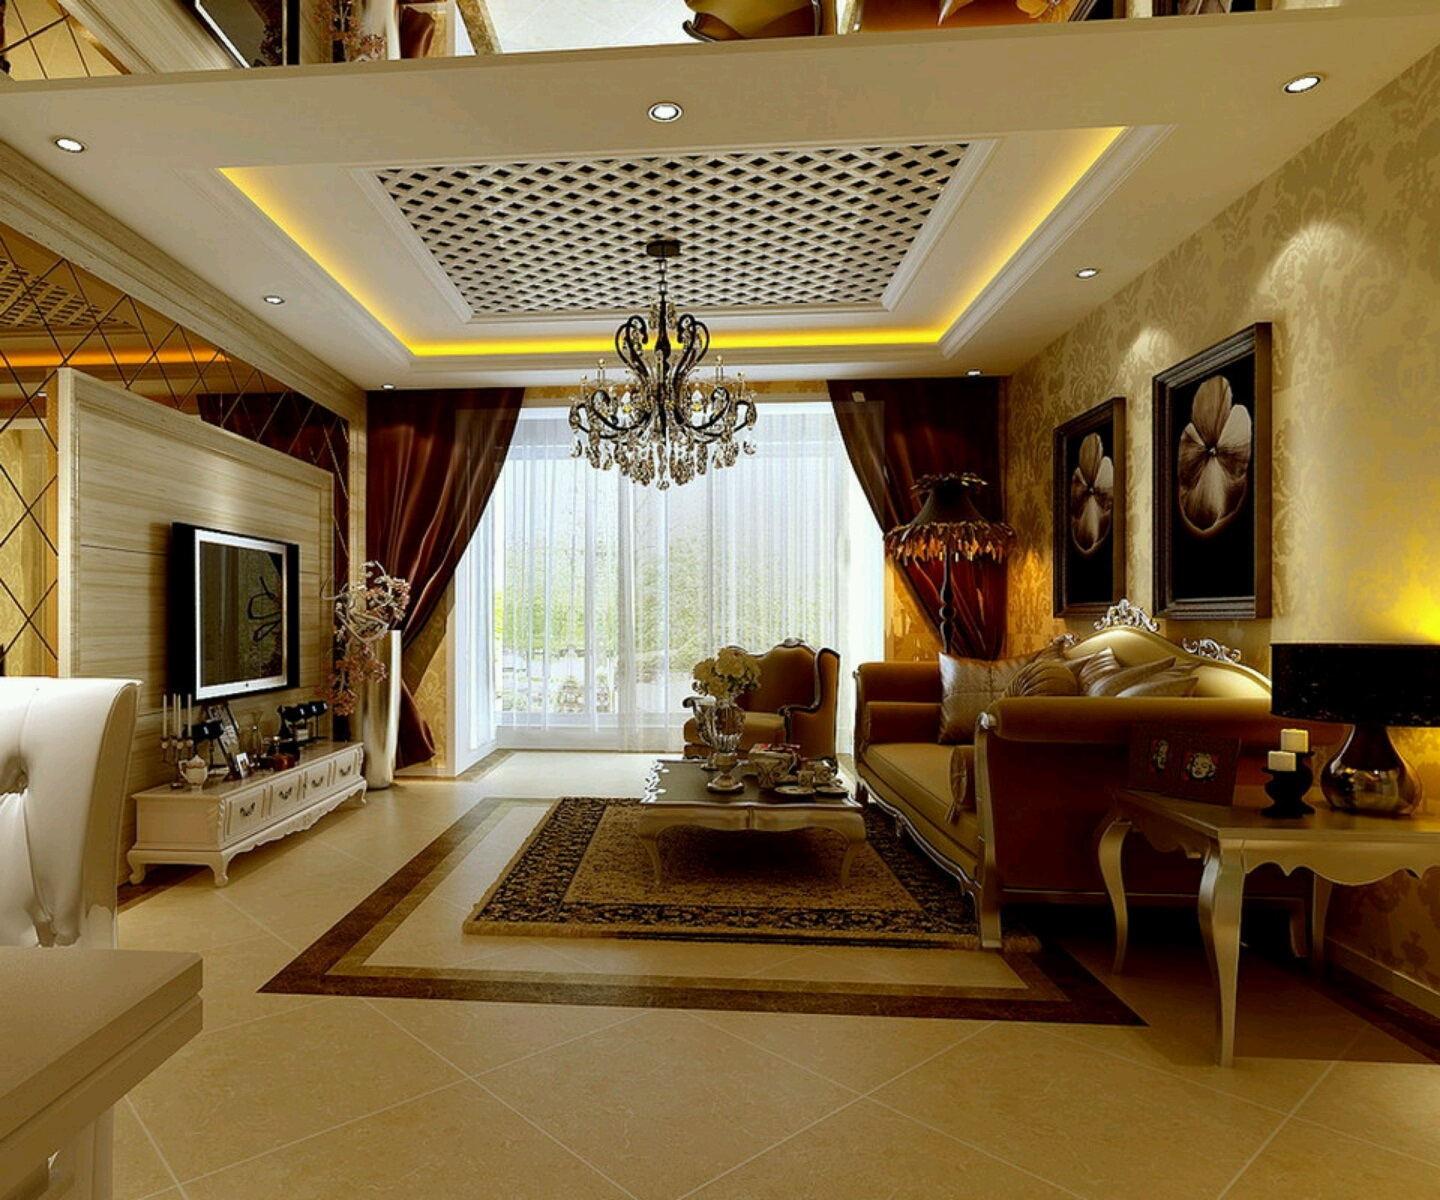 New Home Designs Latest Homes Interior Designs Studyrooms: Ver Fotos De Casas Bonitas. Escoja Y Vote Por Sus Fotos De